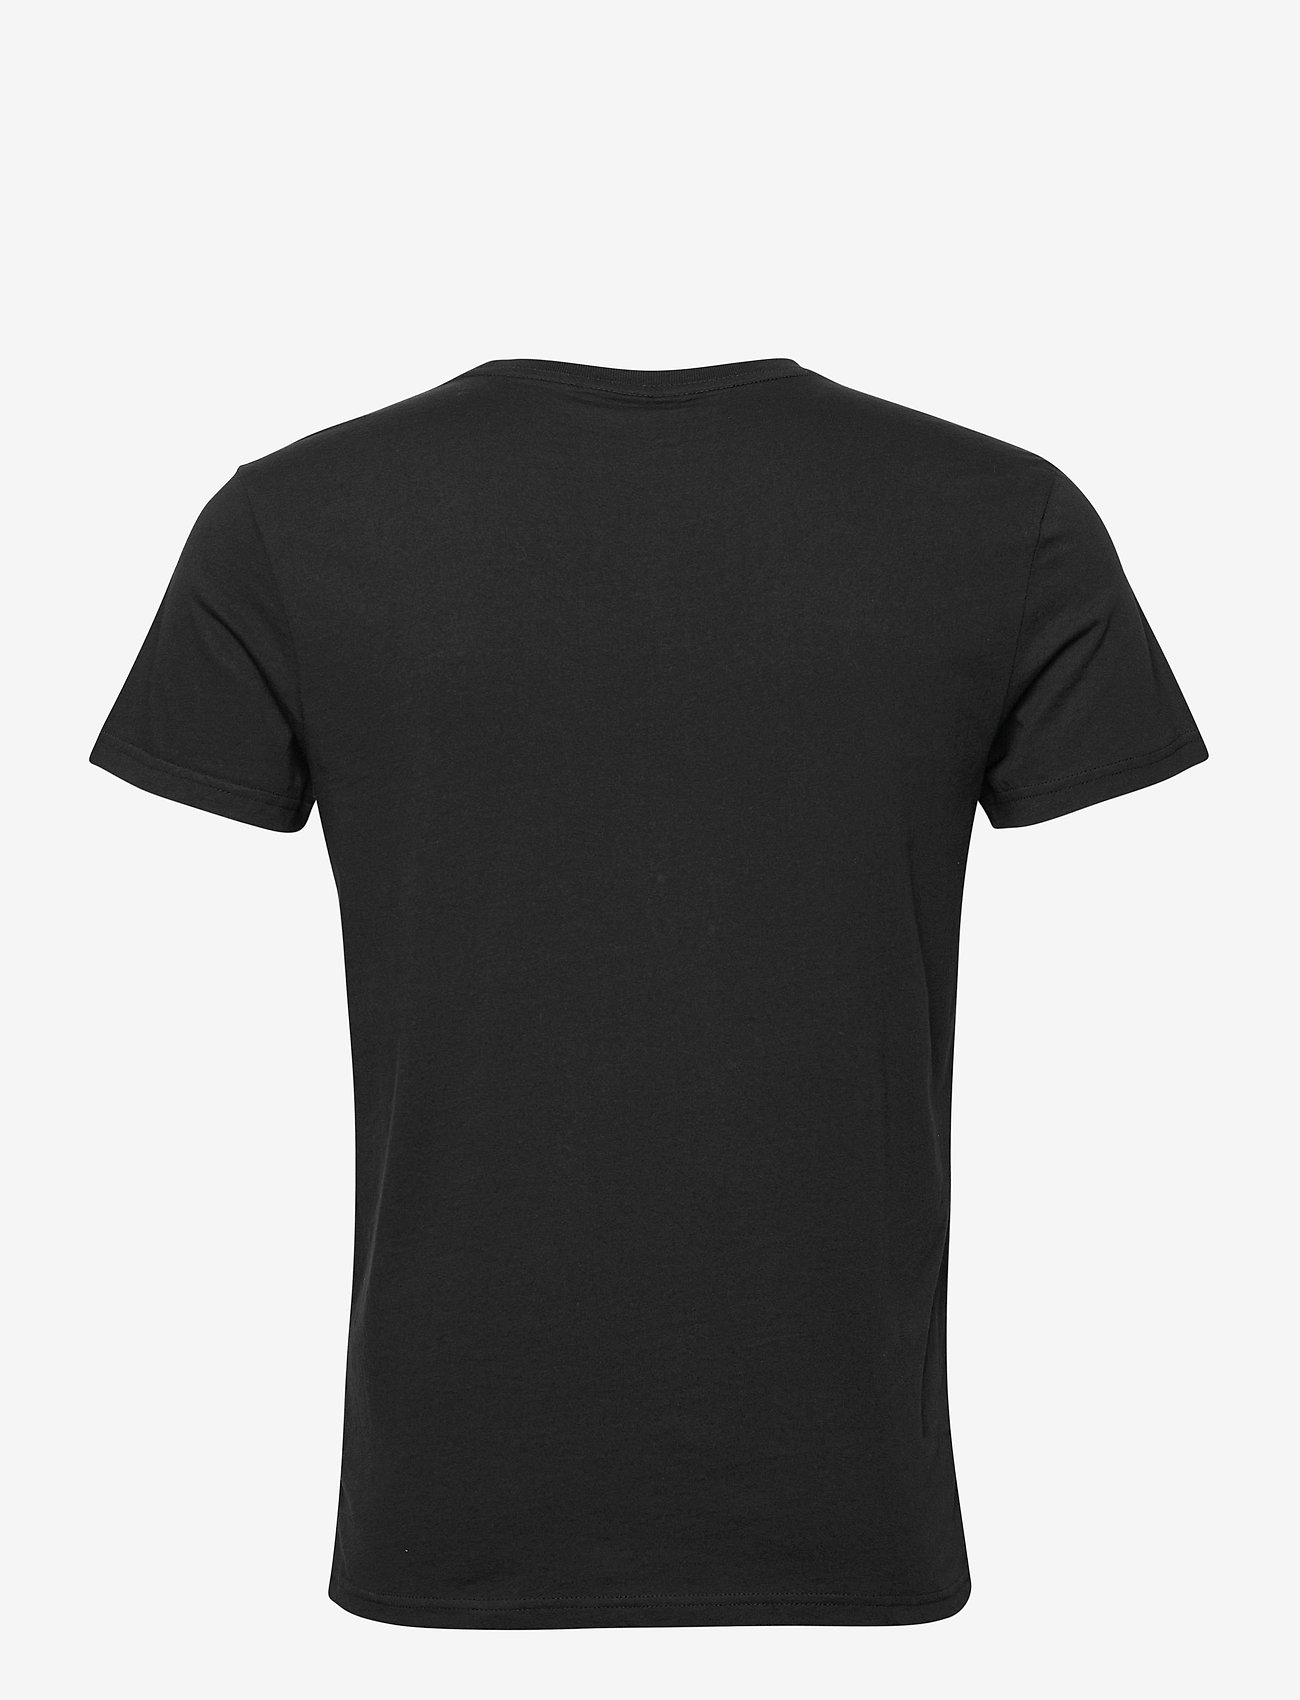 Lee Jeans - TWIN PACK CREW - basic t-shirts - black - 1